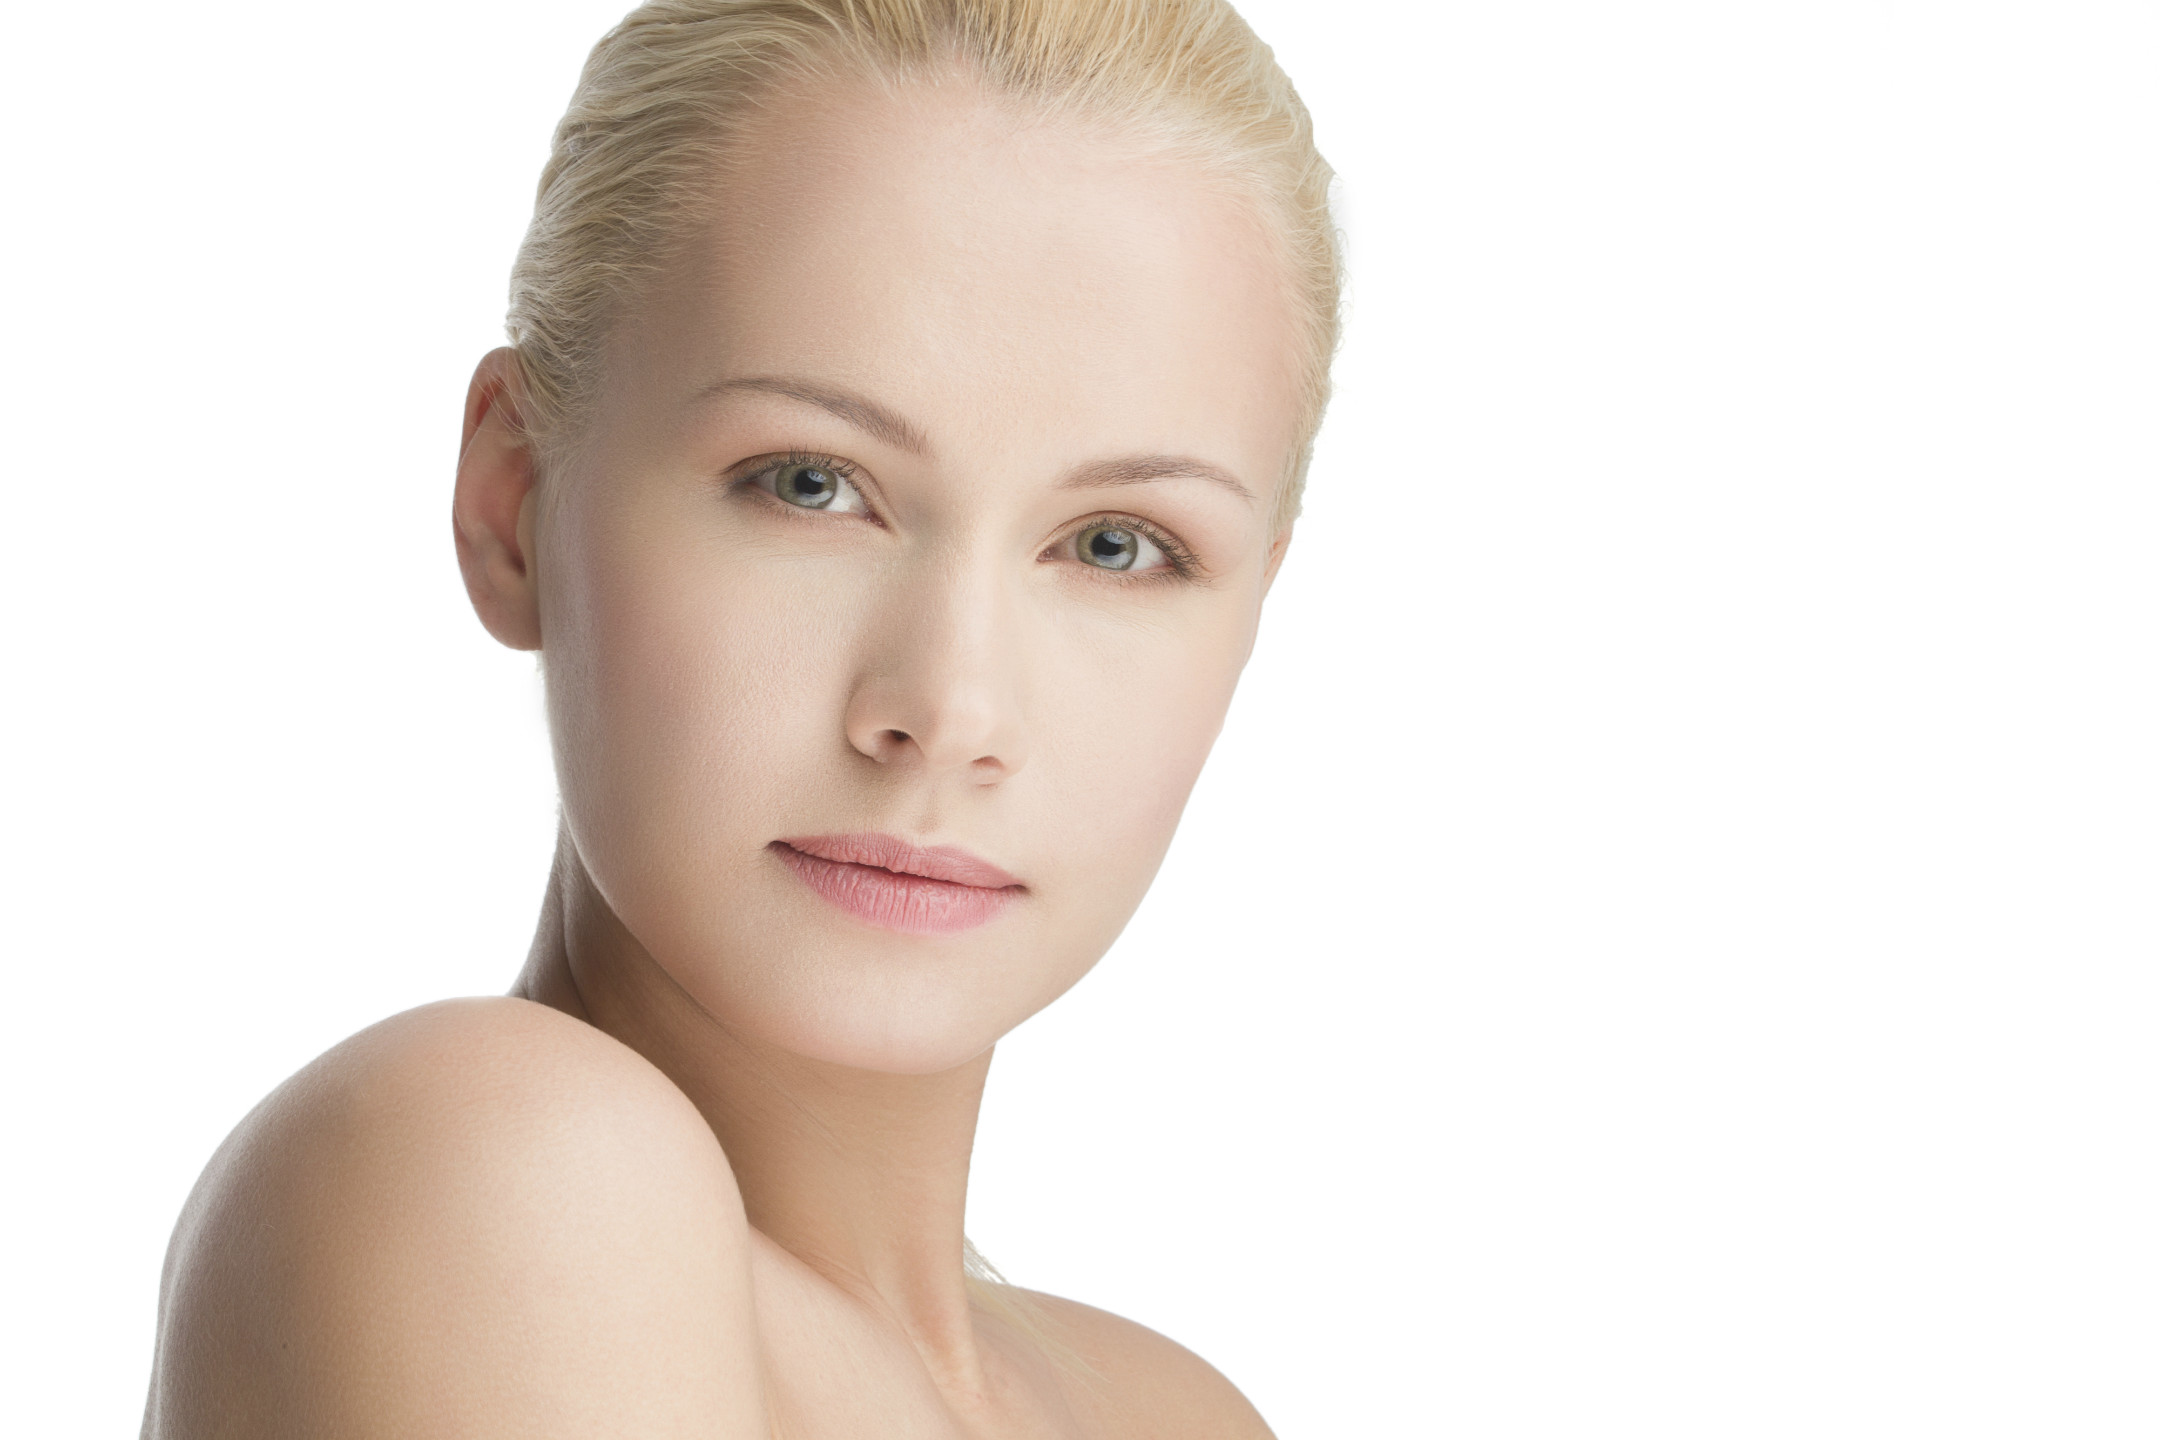 Could Skin Fasting' Renew Your Complexion Could Skin Fasting' Renew Your Complexion new photo